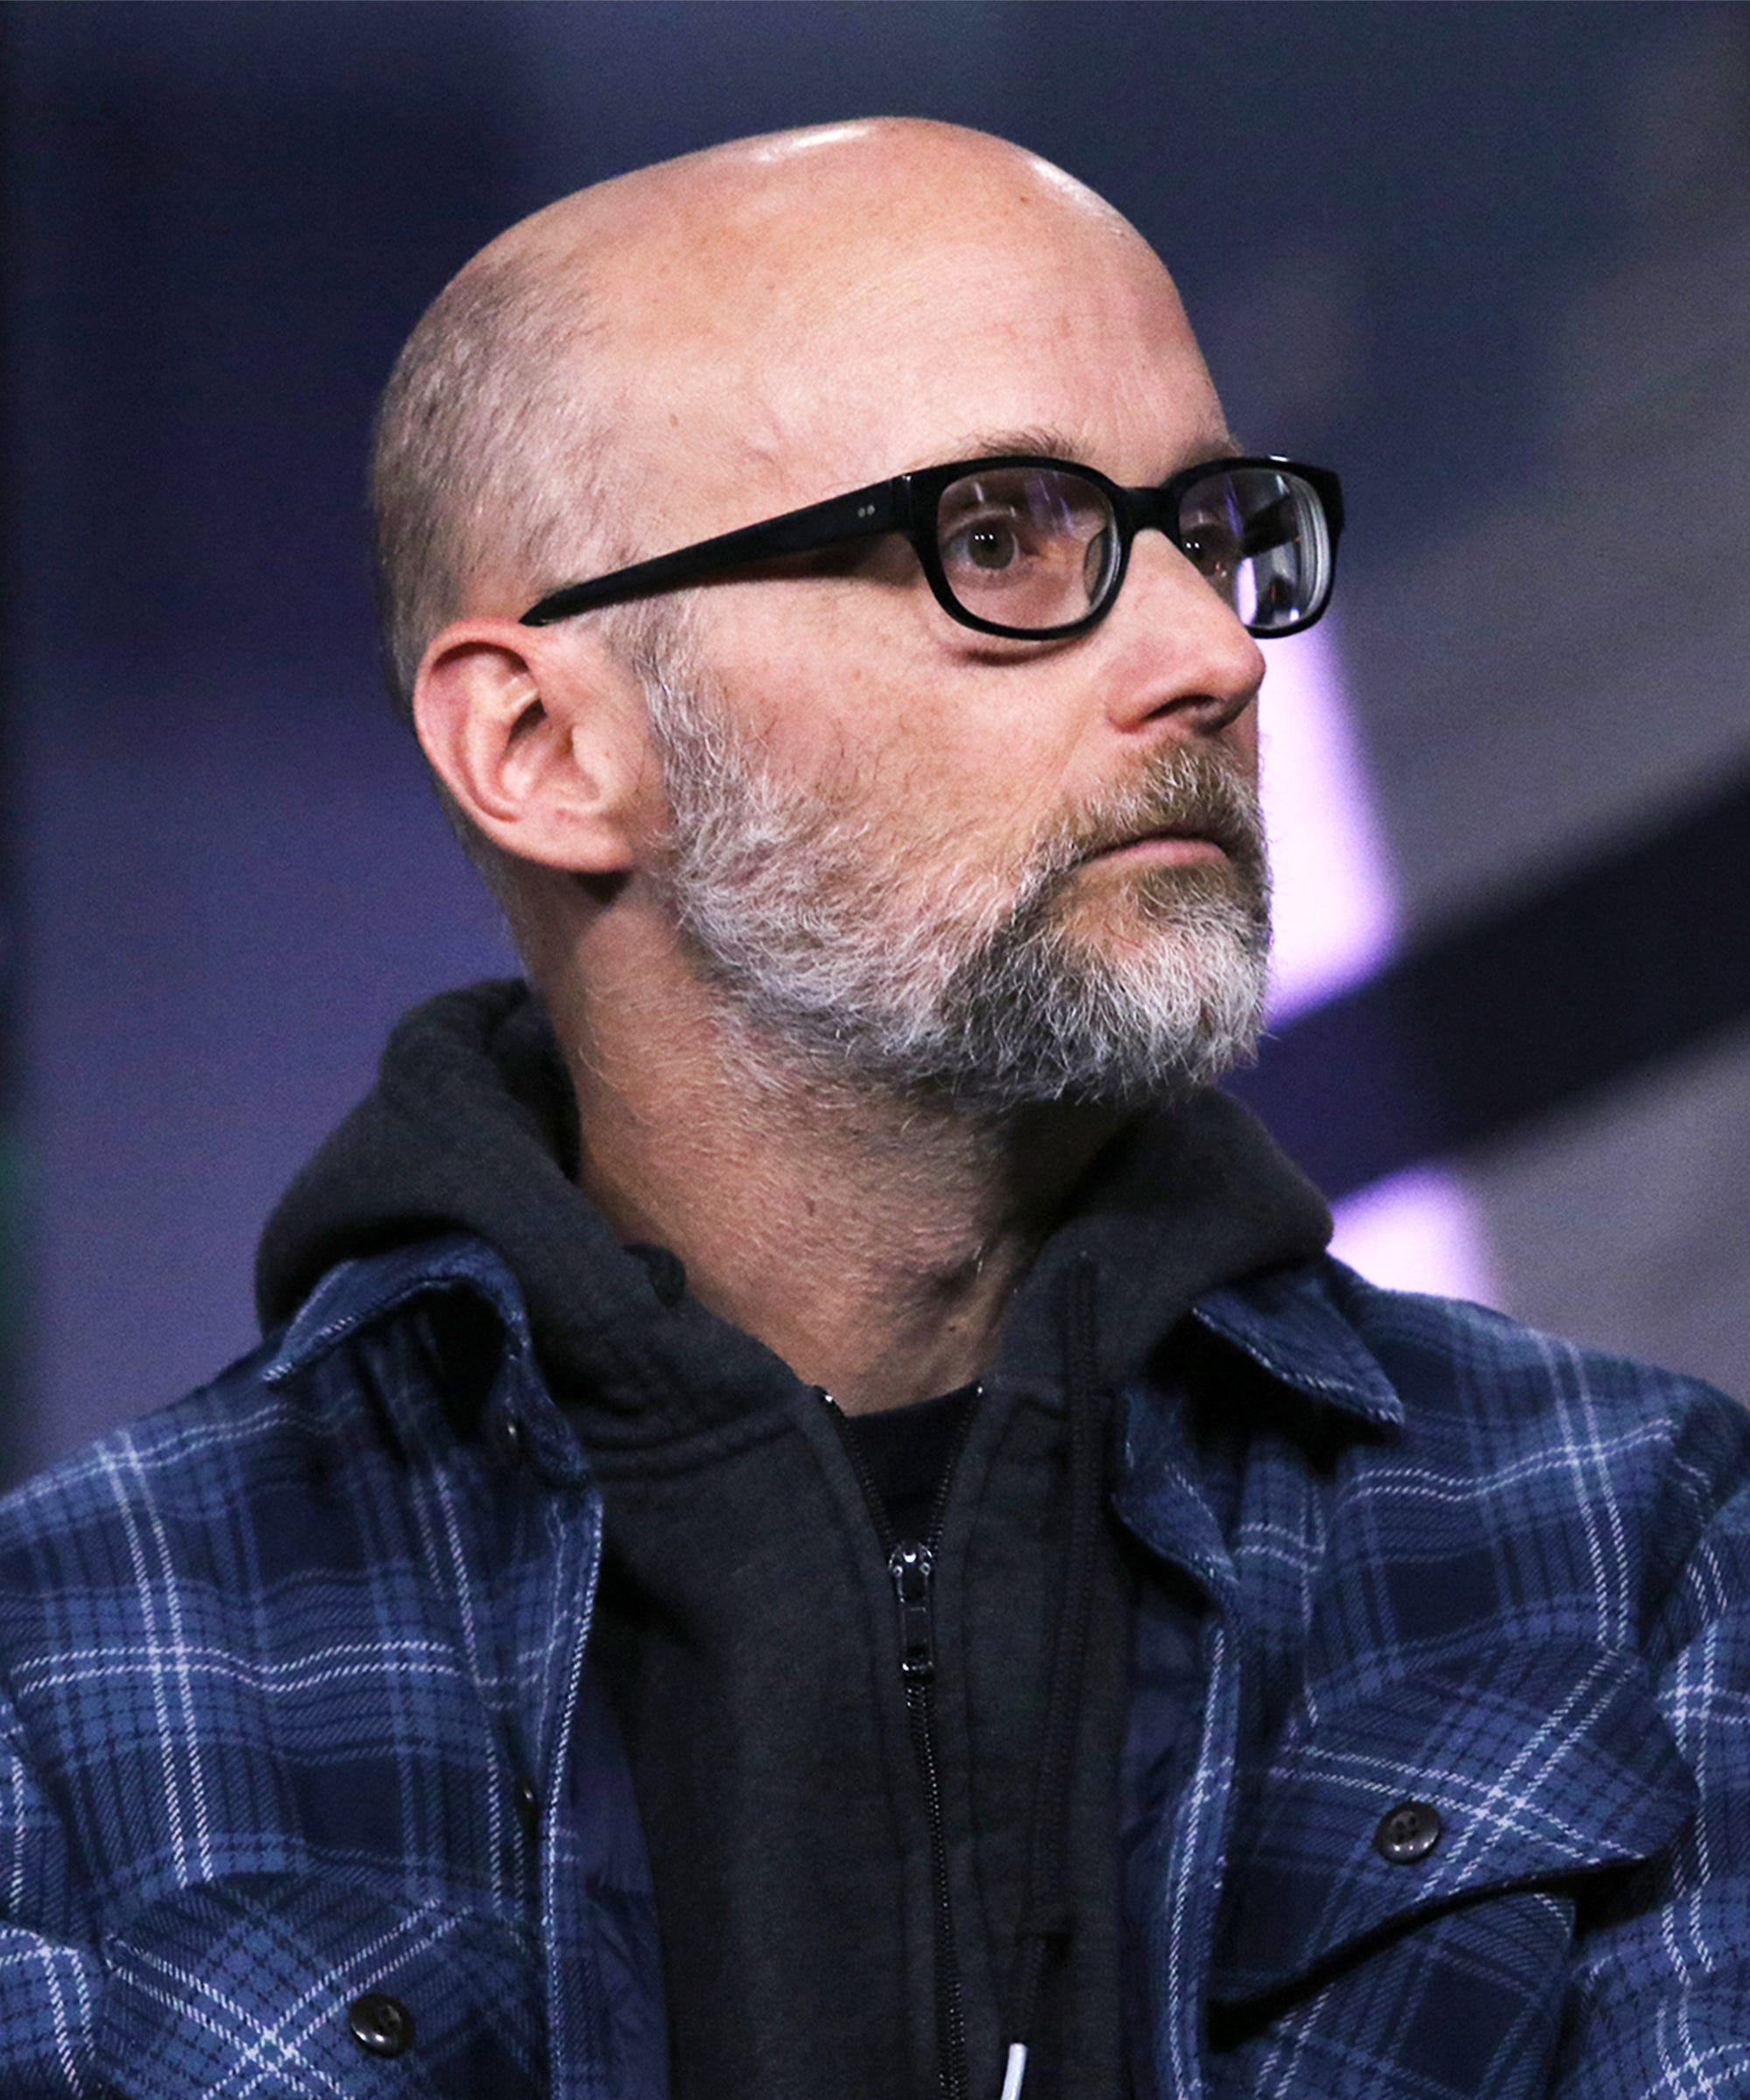 Moby Finally Apologizes To Natalie Portman, But Is It For The Right Reasons?